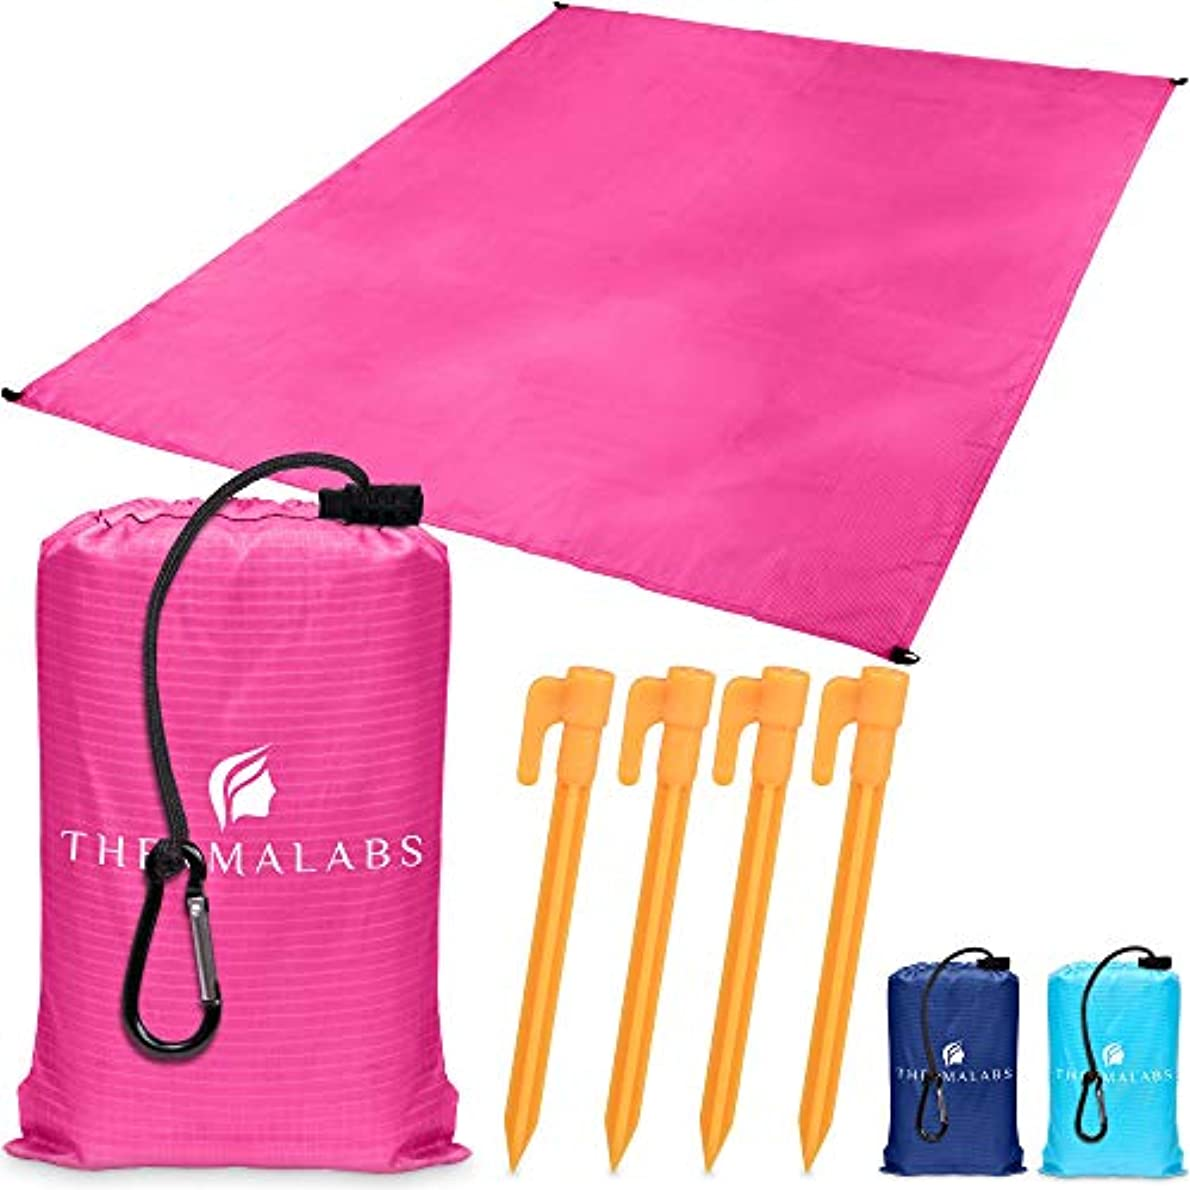 先史時代のワゴンバンジージャンプThermalabs Ground Picnic Blanket for Beach & Park, Waterproof Sandless Pocket Mat, Compact Water Resistant Sheet for Travel, Hiking, Outdoor Camping, Seat Cover w/Stakes, Ziplock Bag & More! Pink [並行輸入品]